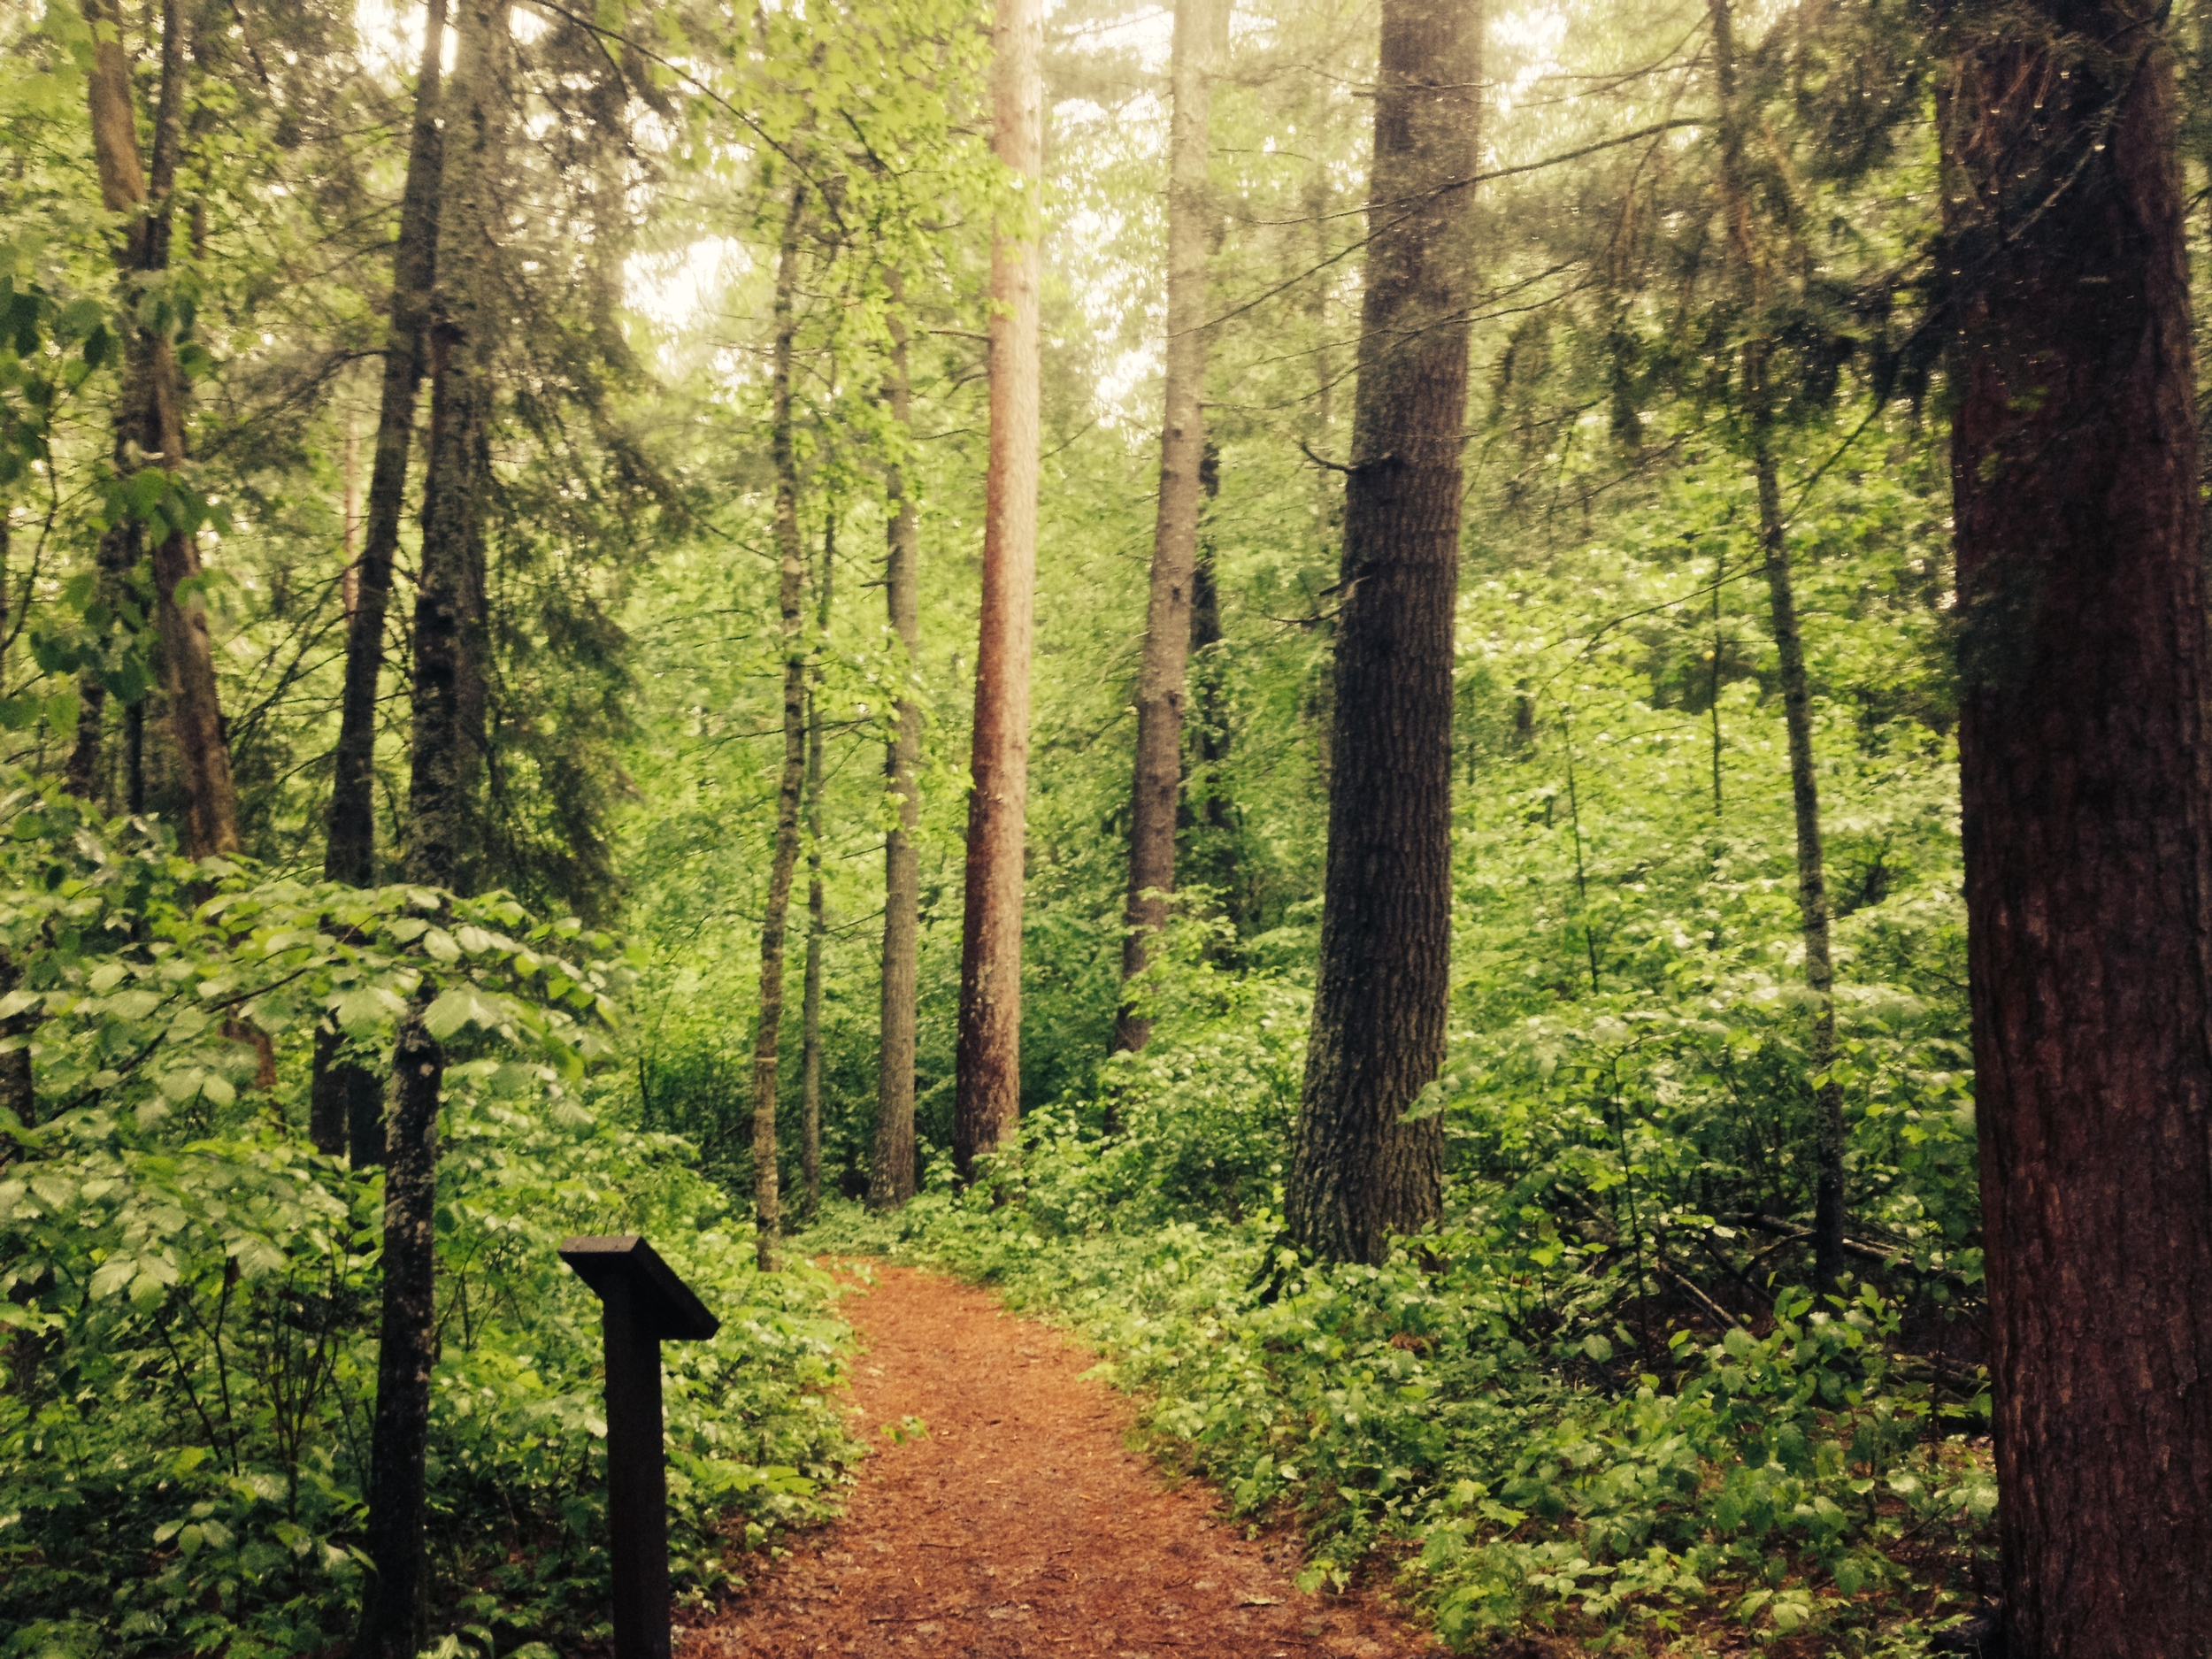 Hiking through the Lost 40 SNA in Chippewa National Forest